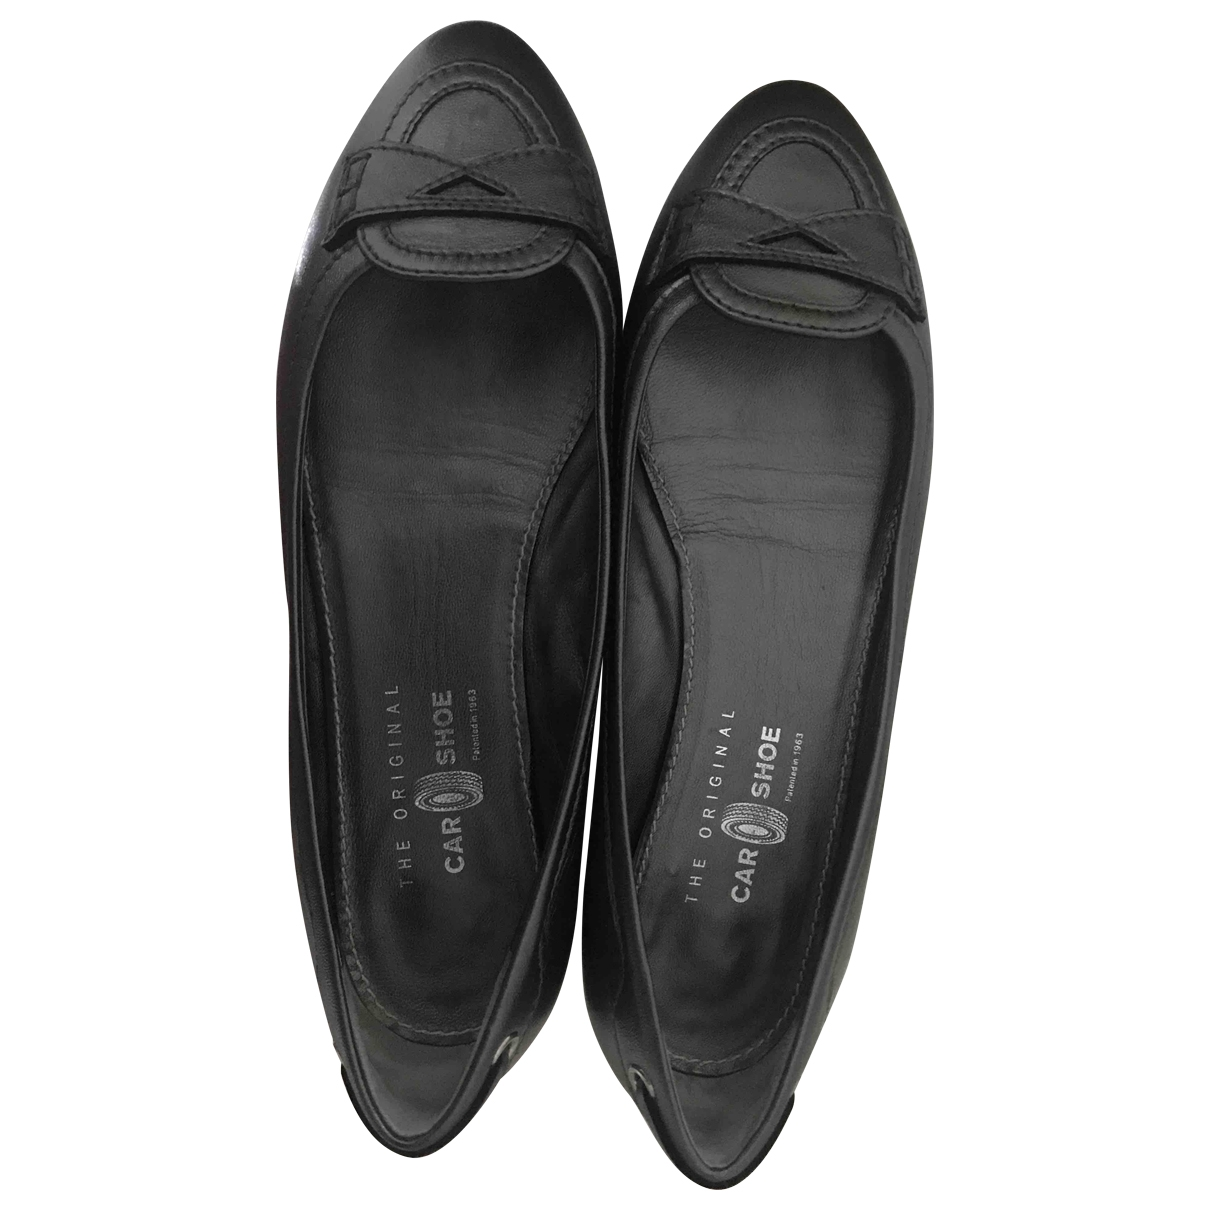 Carshoe \N Anthracite Leather Flats for Women 38 EU